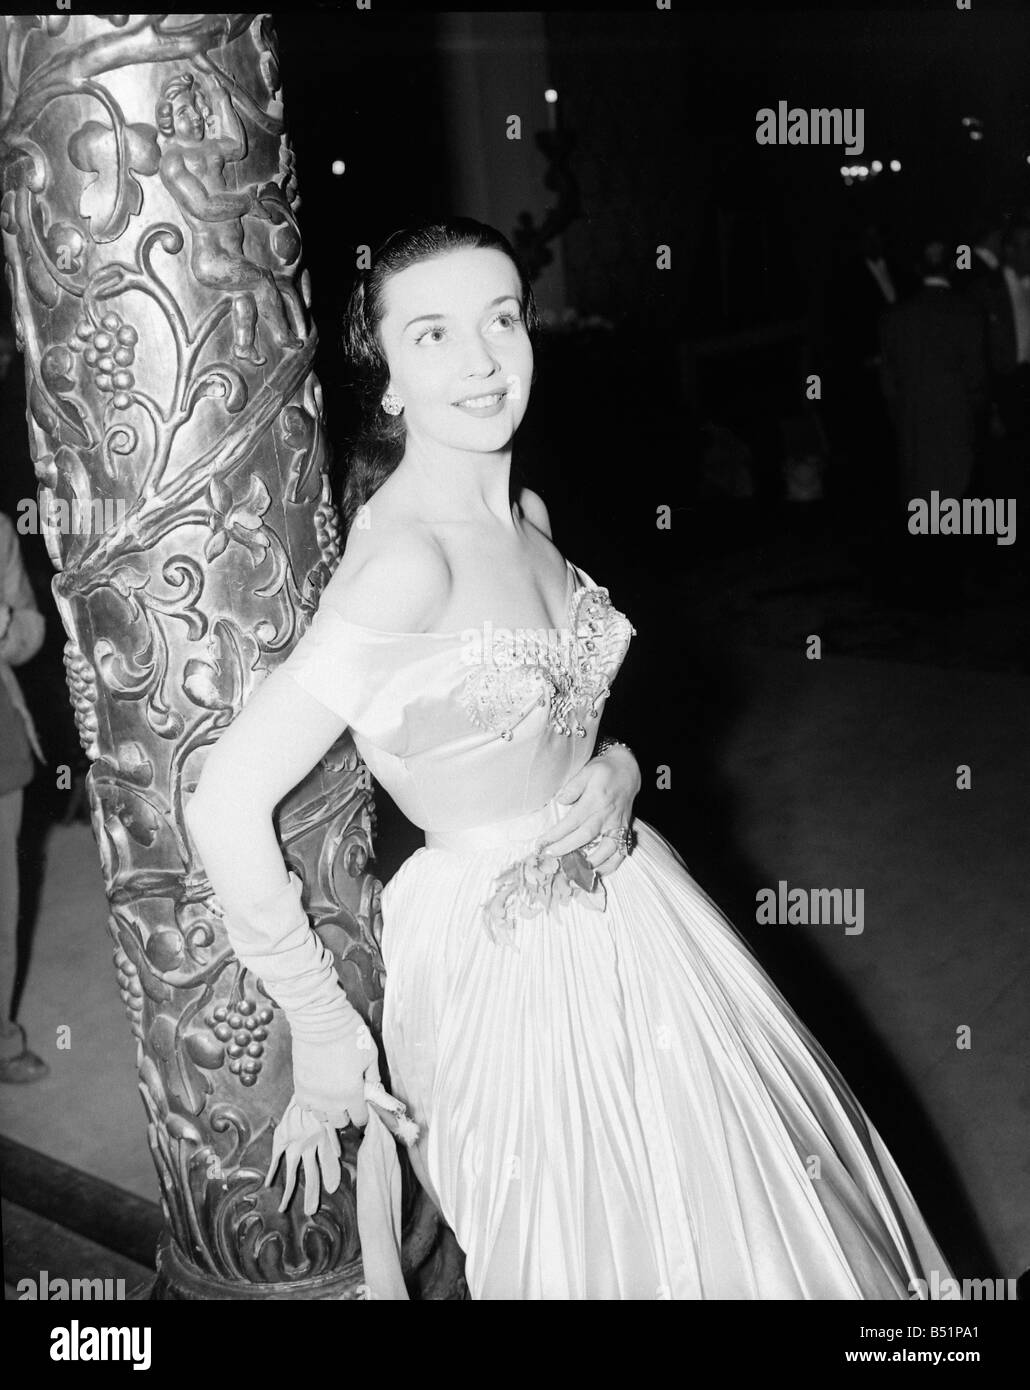 Film;'Encore' Premiere at Plaza, Lower Regent St.;Glennis Johns;Siday     15/11/1951;B5398/2; - Stock Image